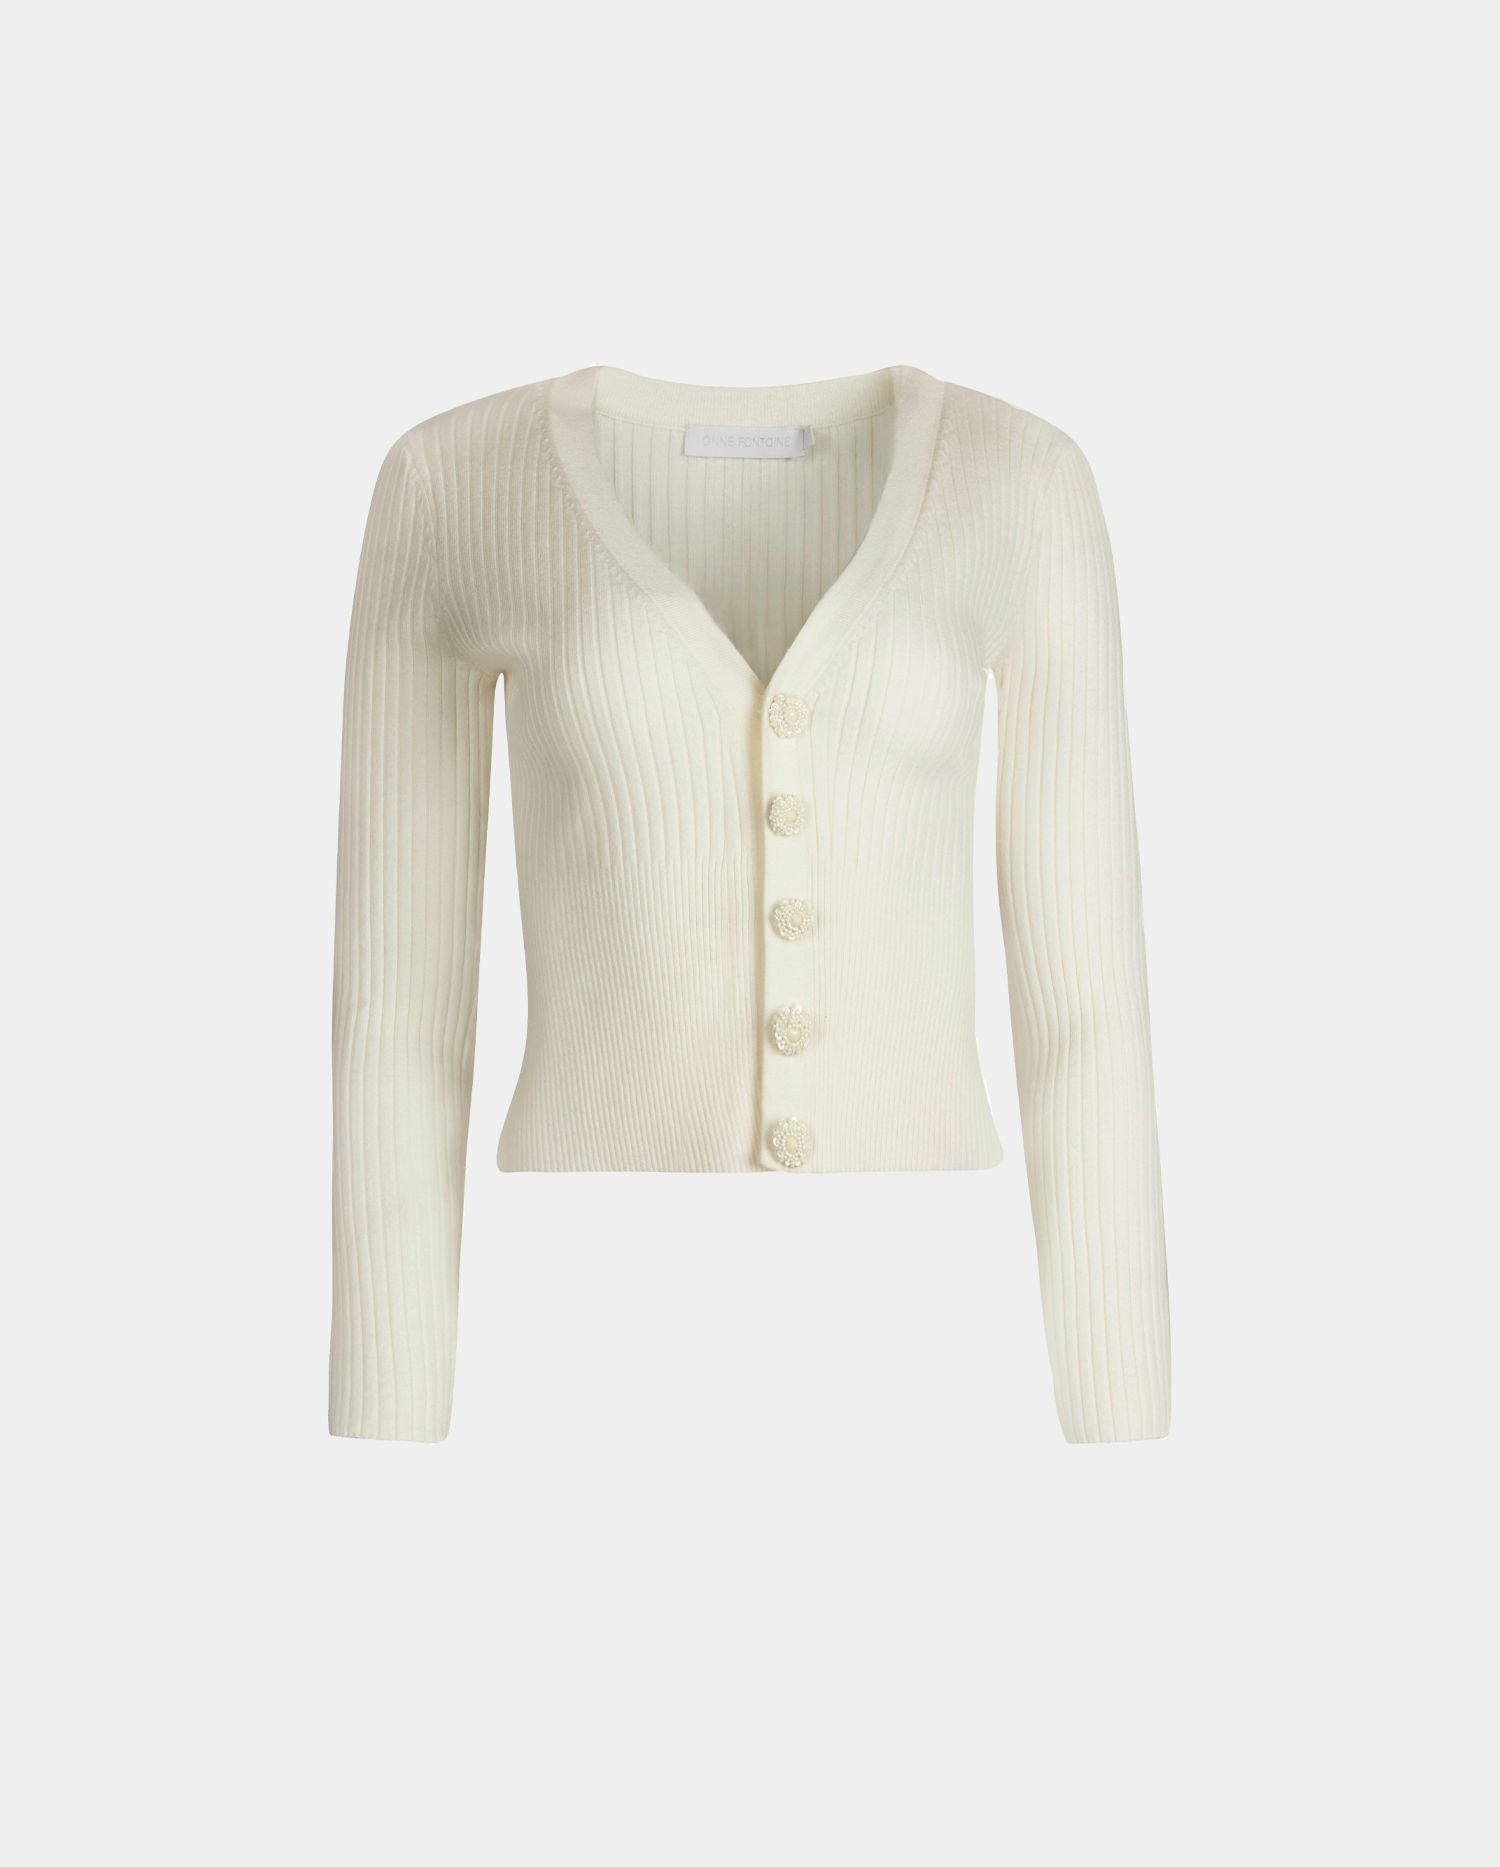 The SOLFEGE moon white cardigan is the perfect layer to add to your Fall wardrobe